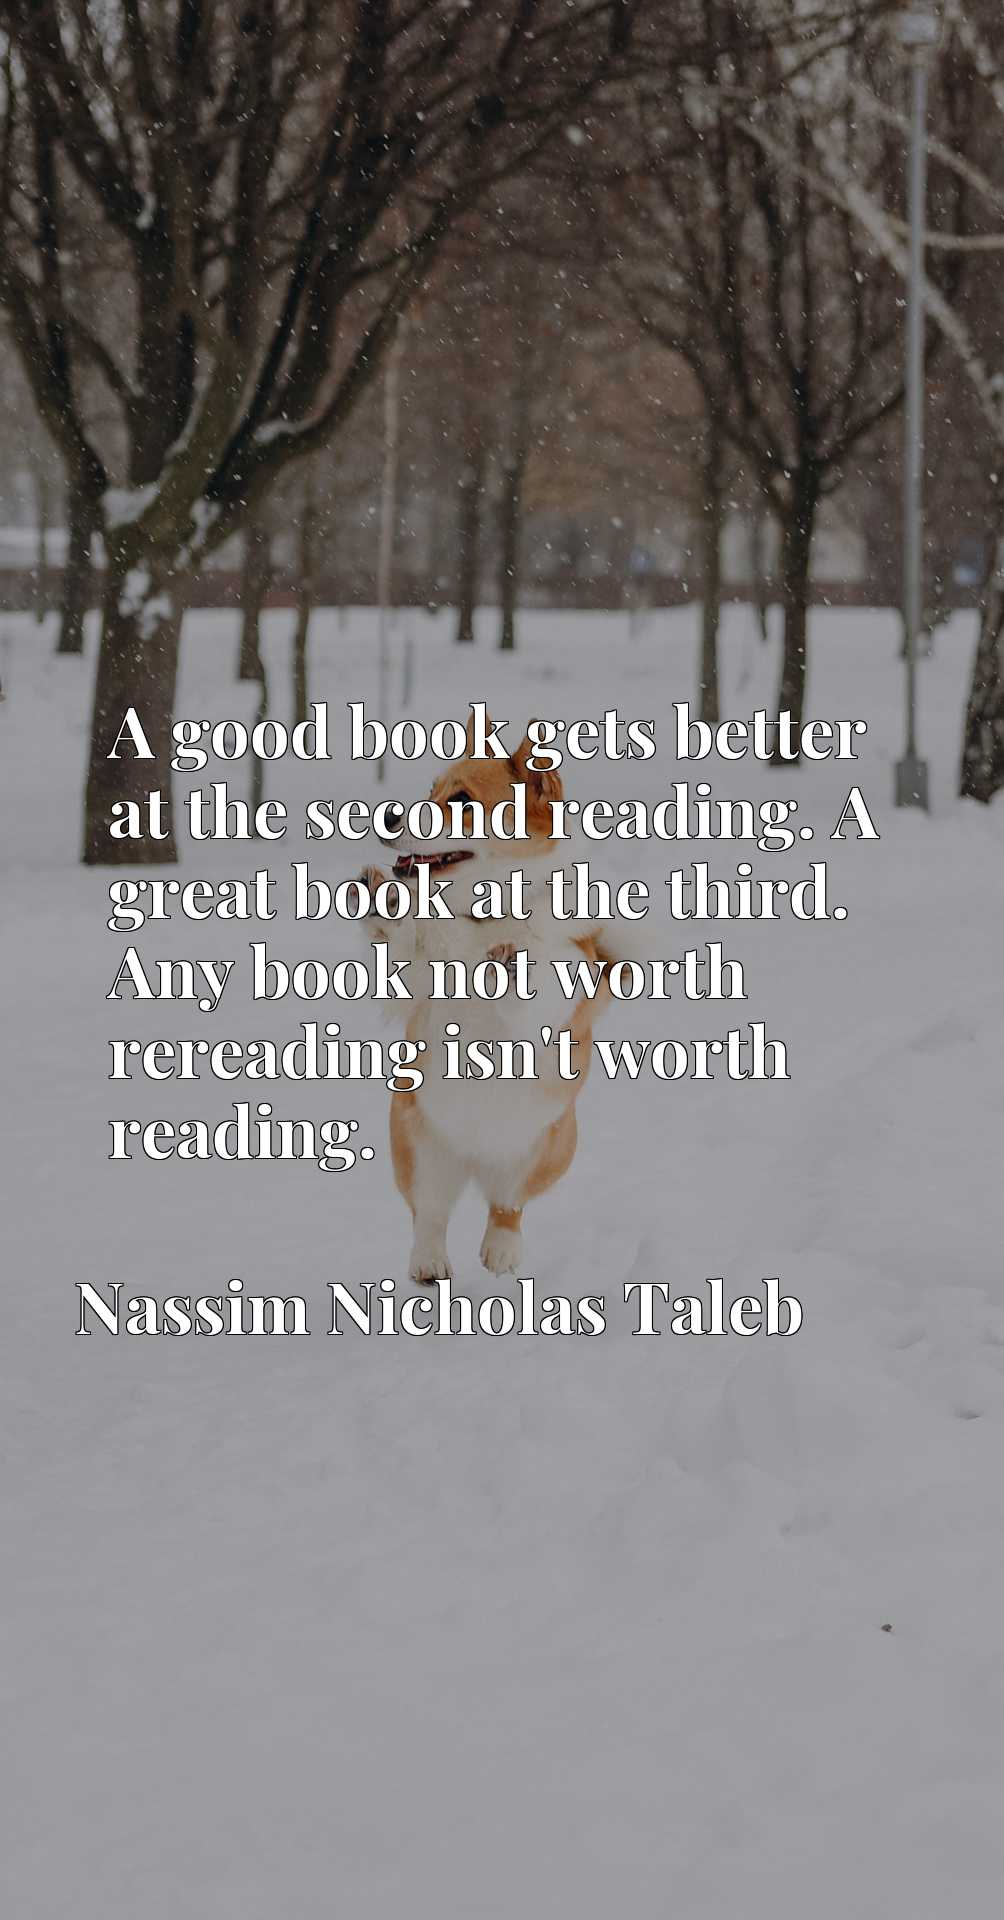 A good book gets better at the second reading. A great book at the third. Any book not worth rereading isn't worth reading.